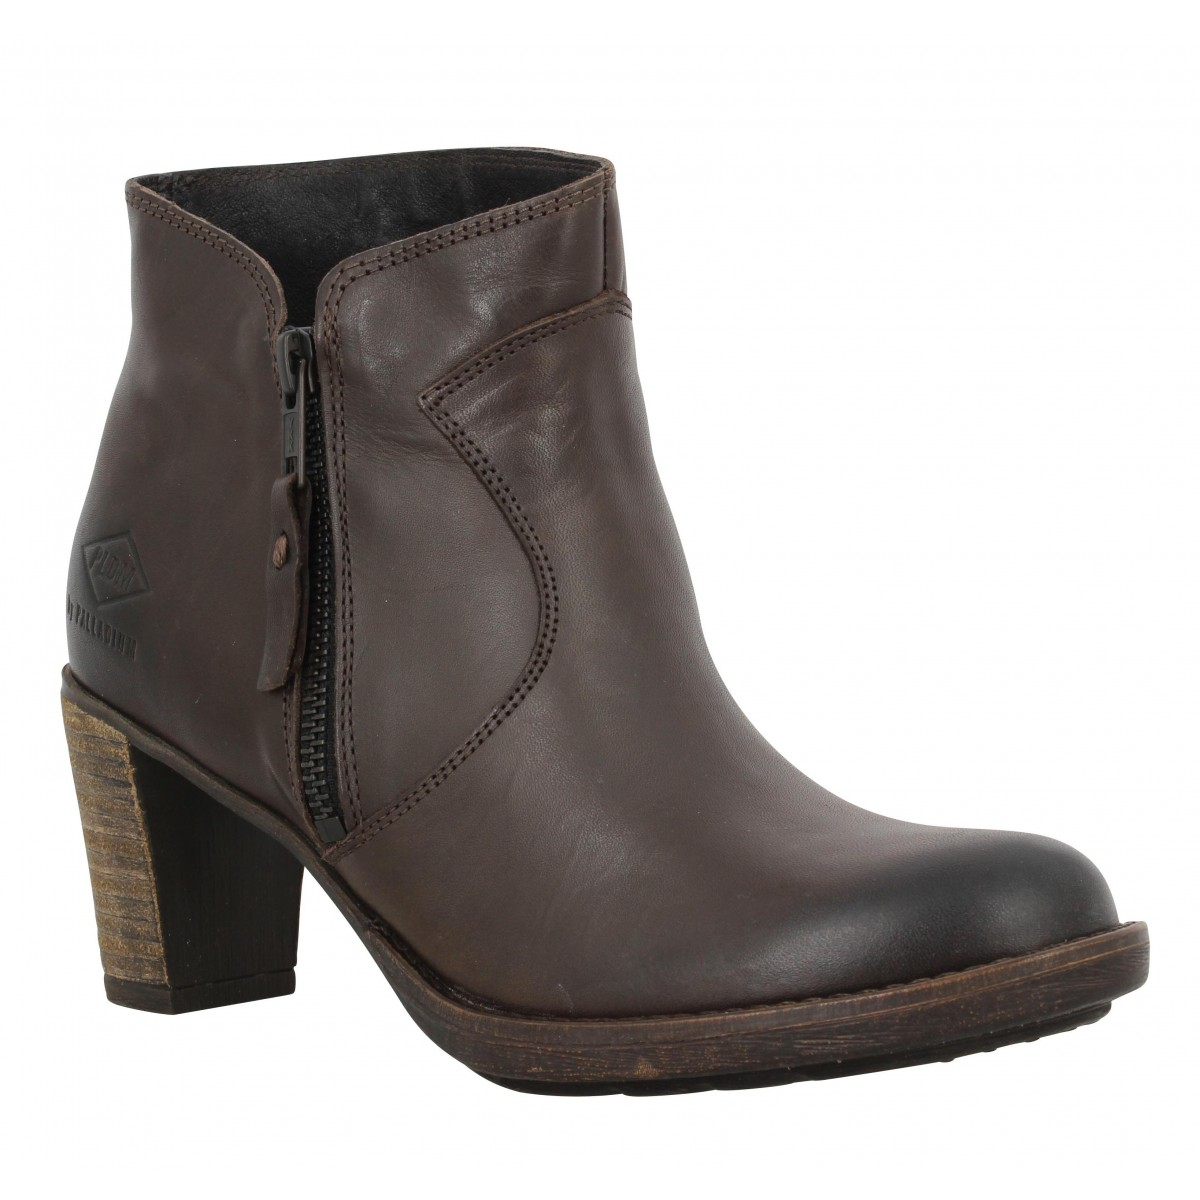 Bottines PALLADIUM Spring cuir Femme Marron Fonce